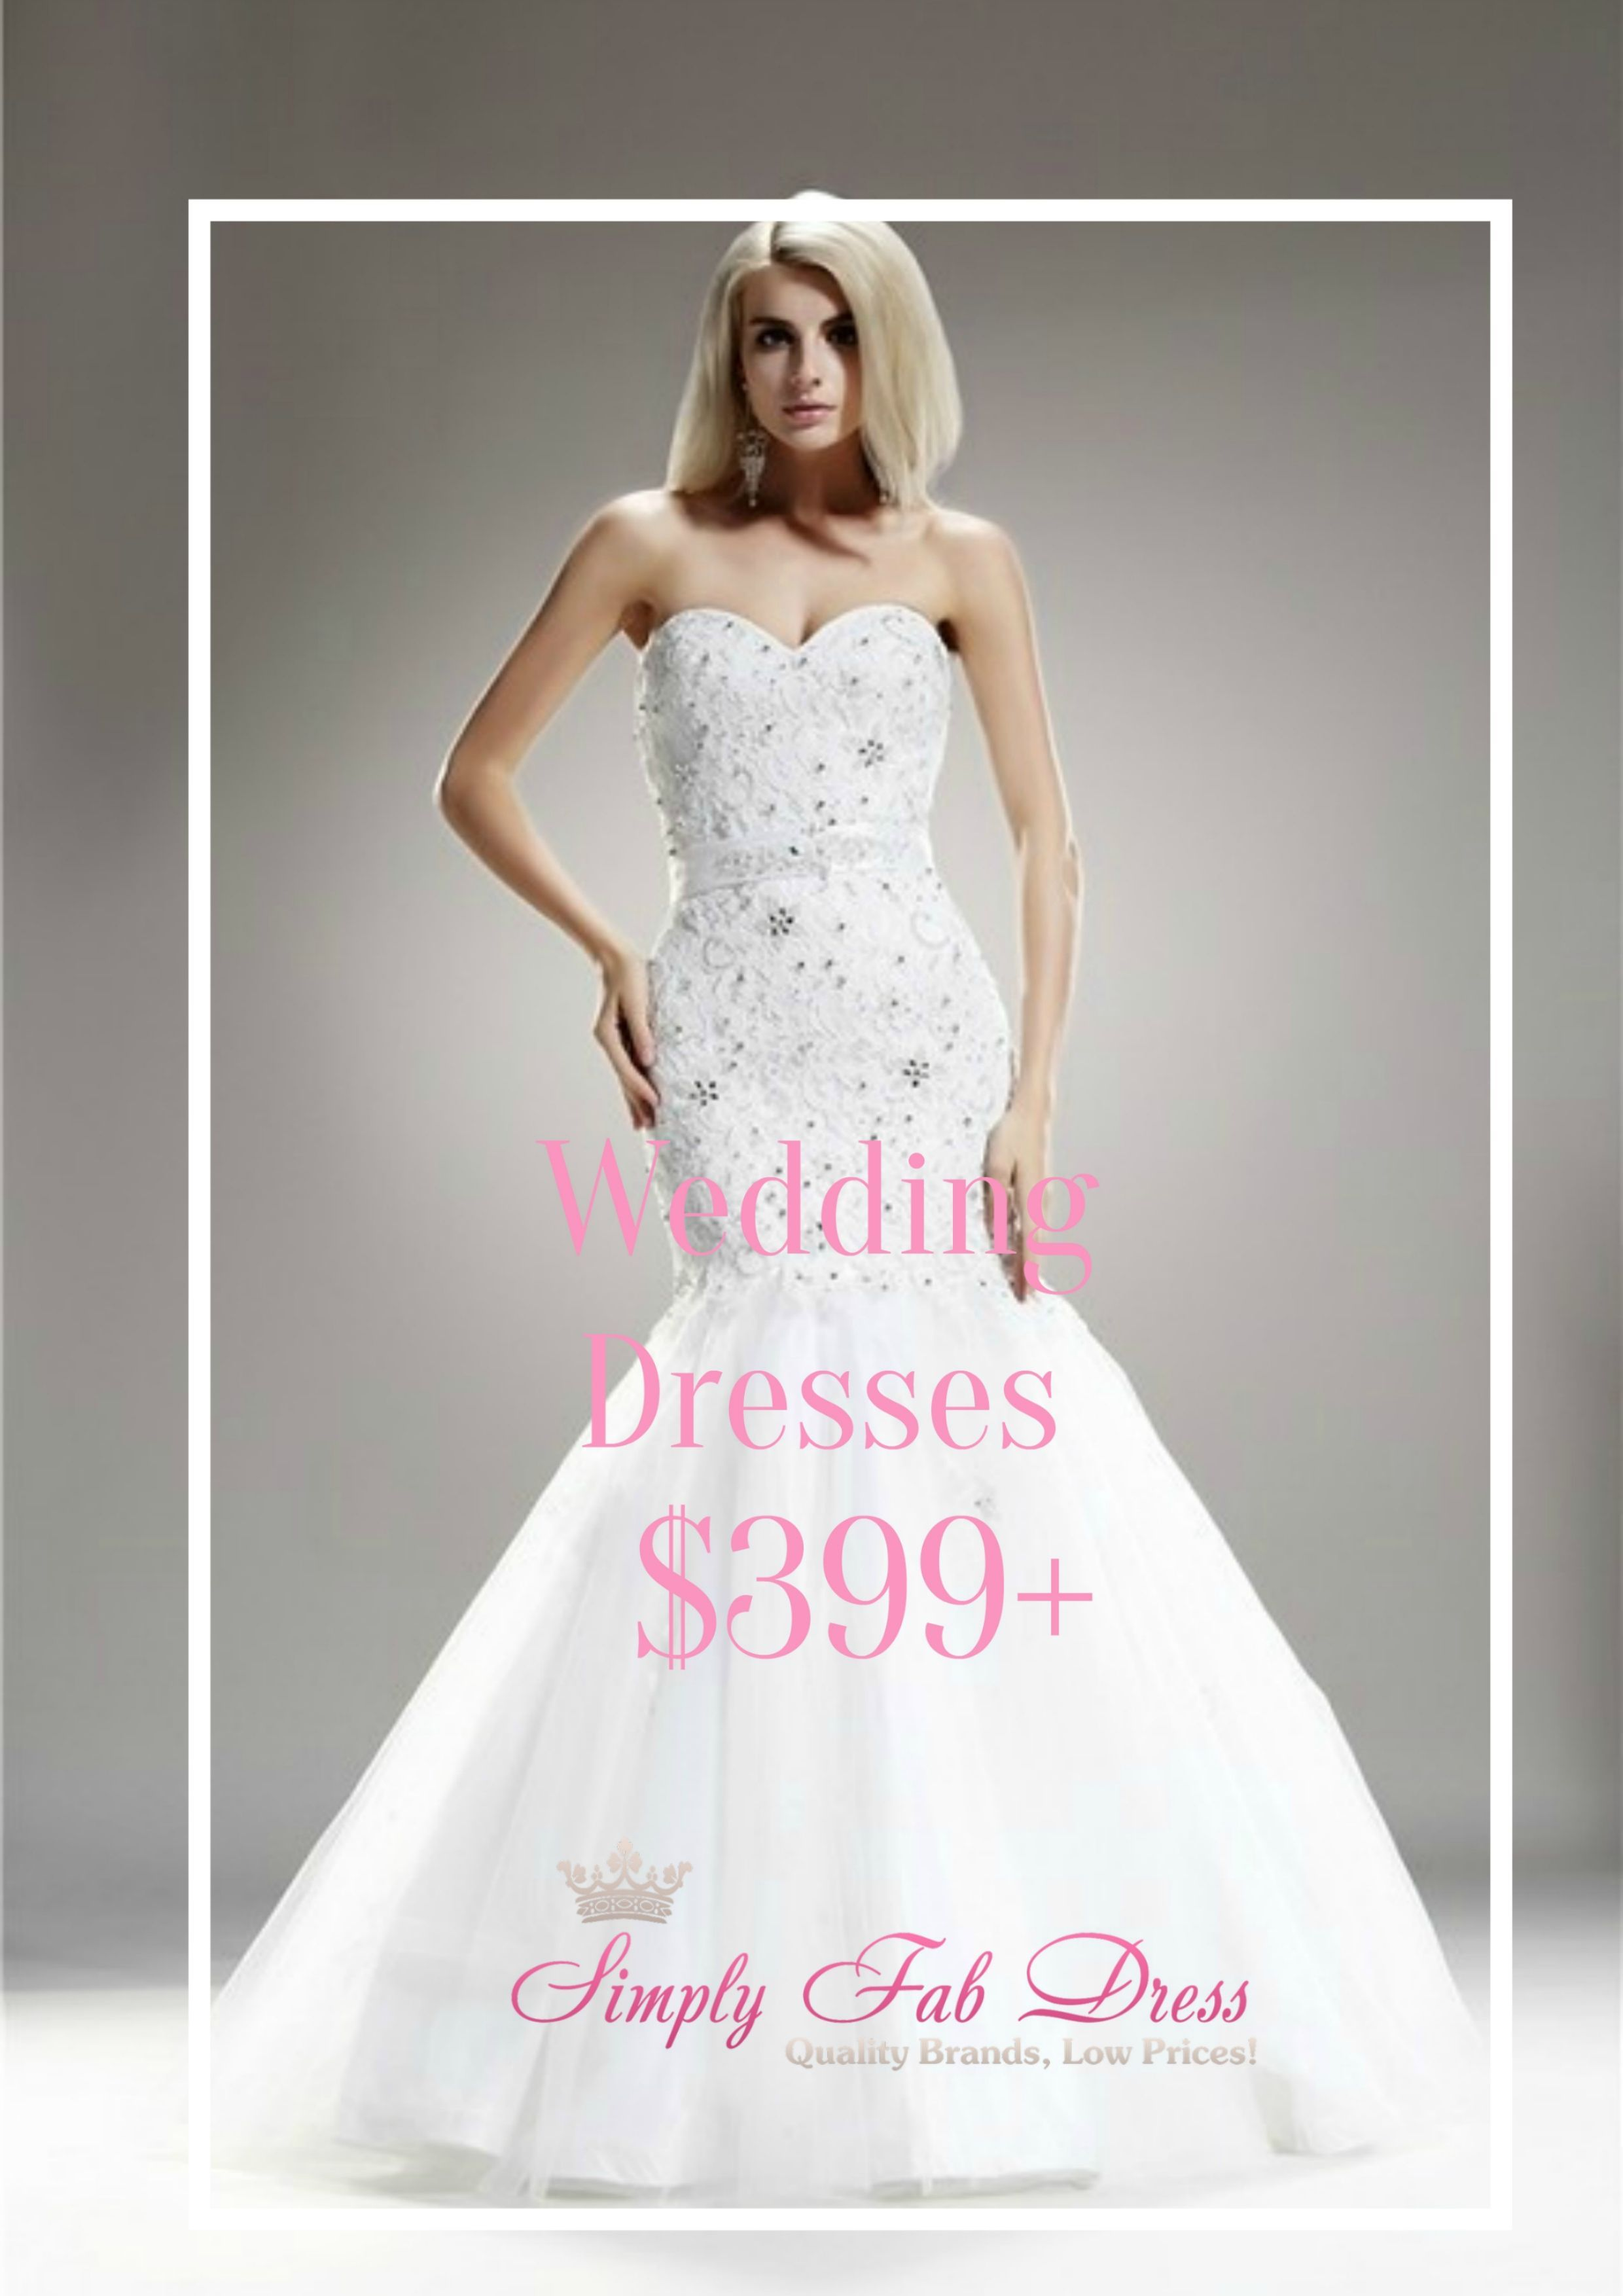 Buying your wedding dress does NOT have to break the bank. Simply ...